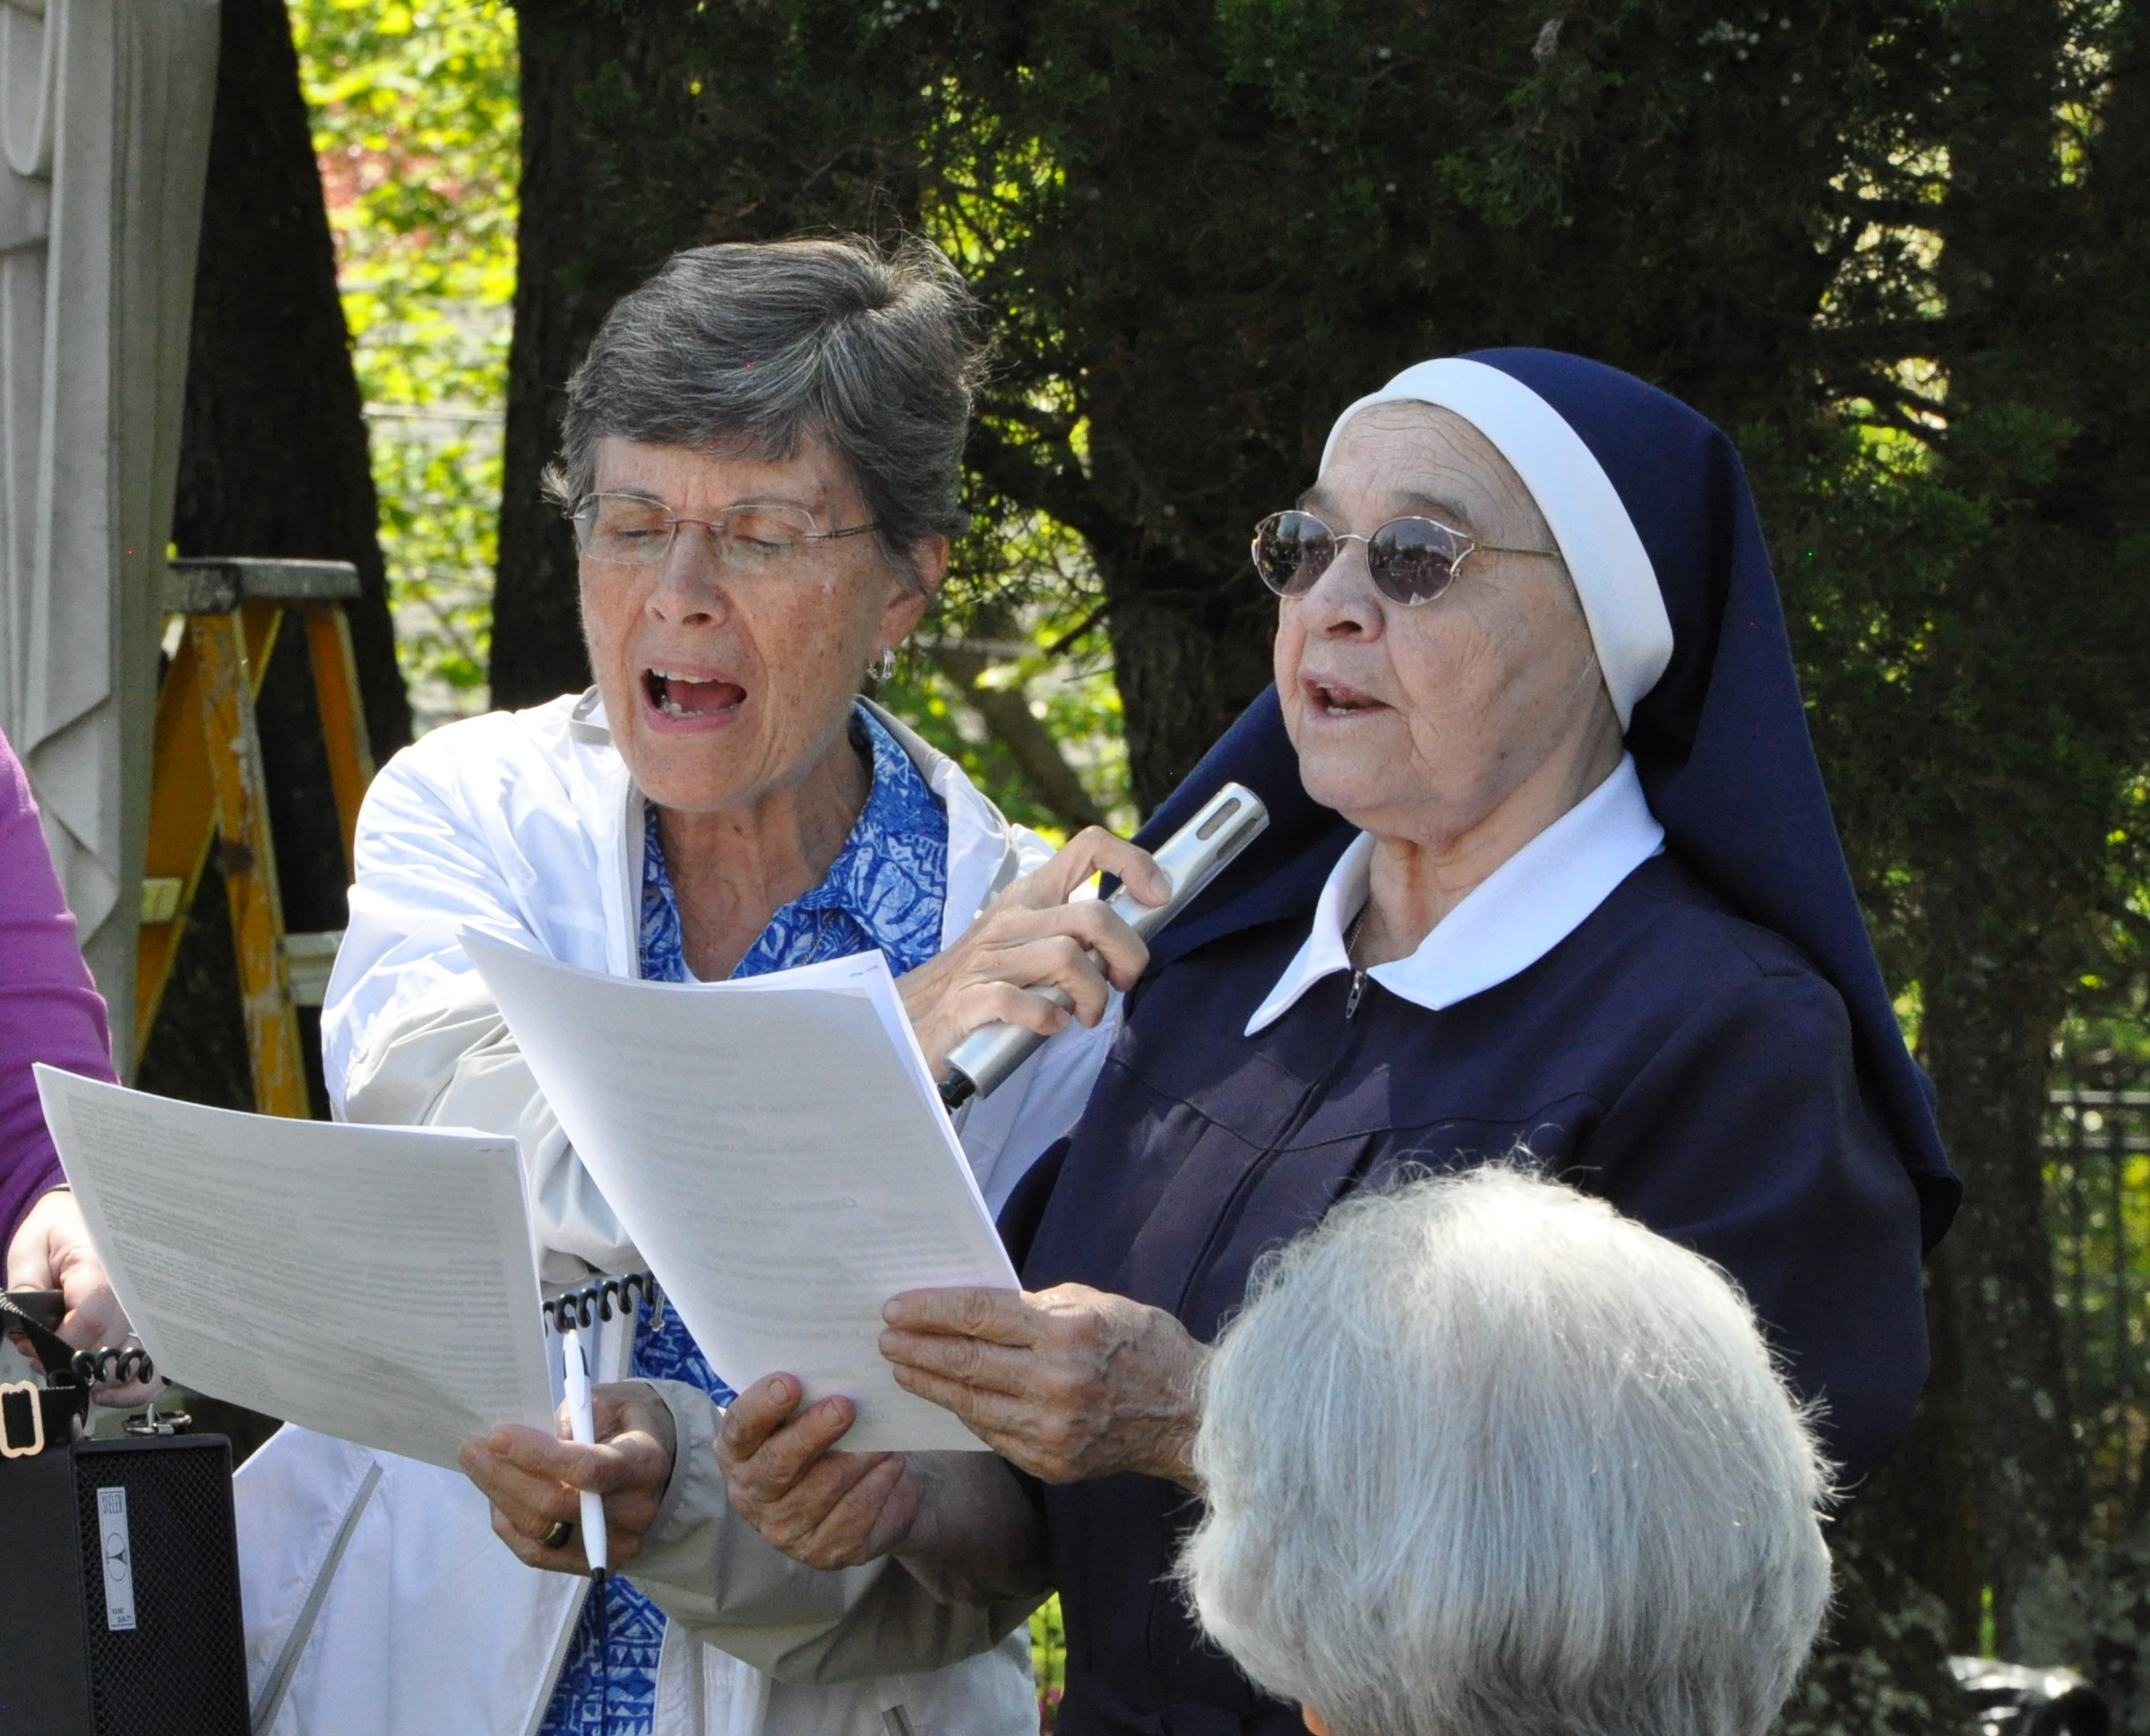 Sister Ines Gizzarelli  and  Sister Margarita Bermudez  singing a hymn during the crowning of Our Lady's statue